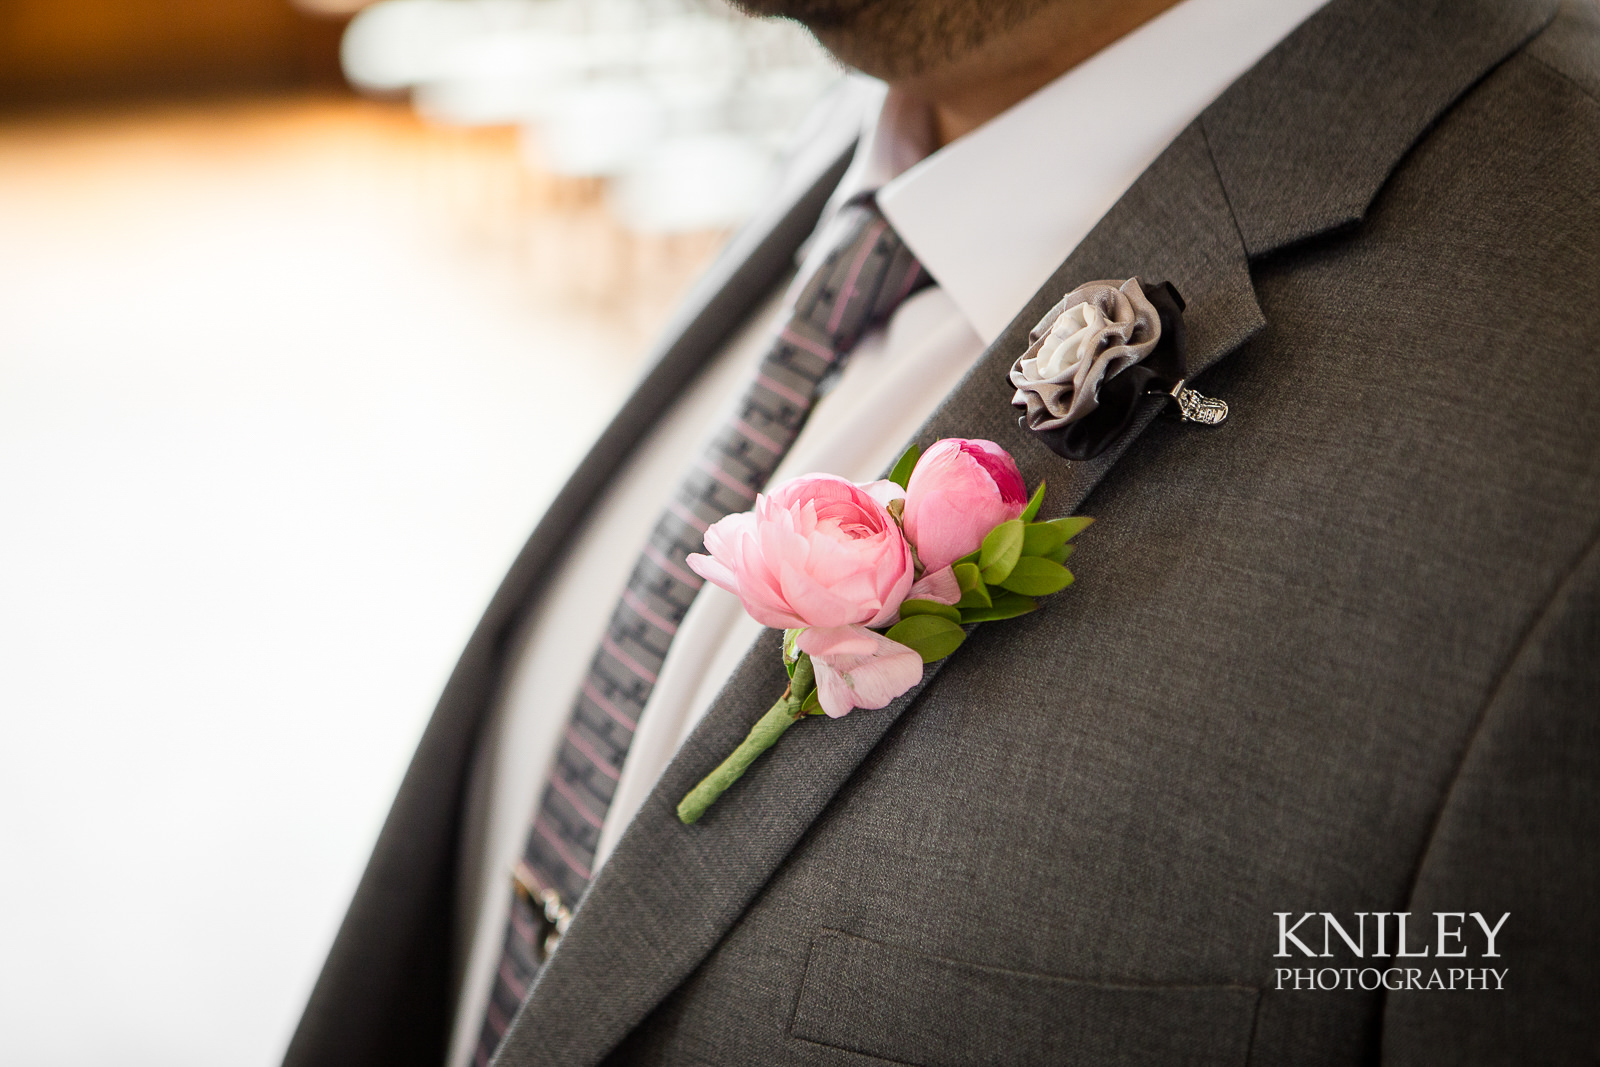 020 - Westminster Chapel - Rochester NY wedding photo - Kniley Photography.jpg